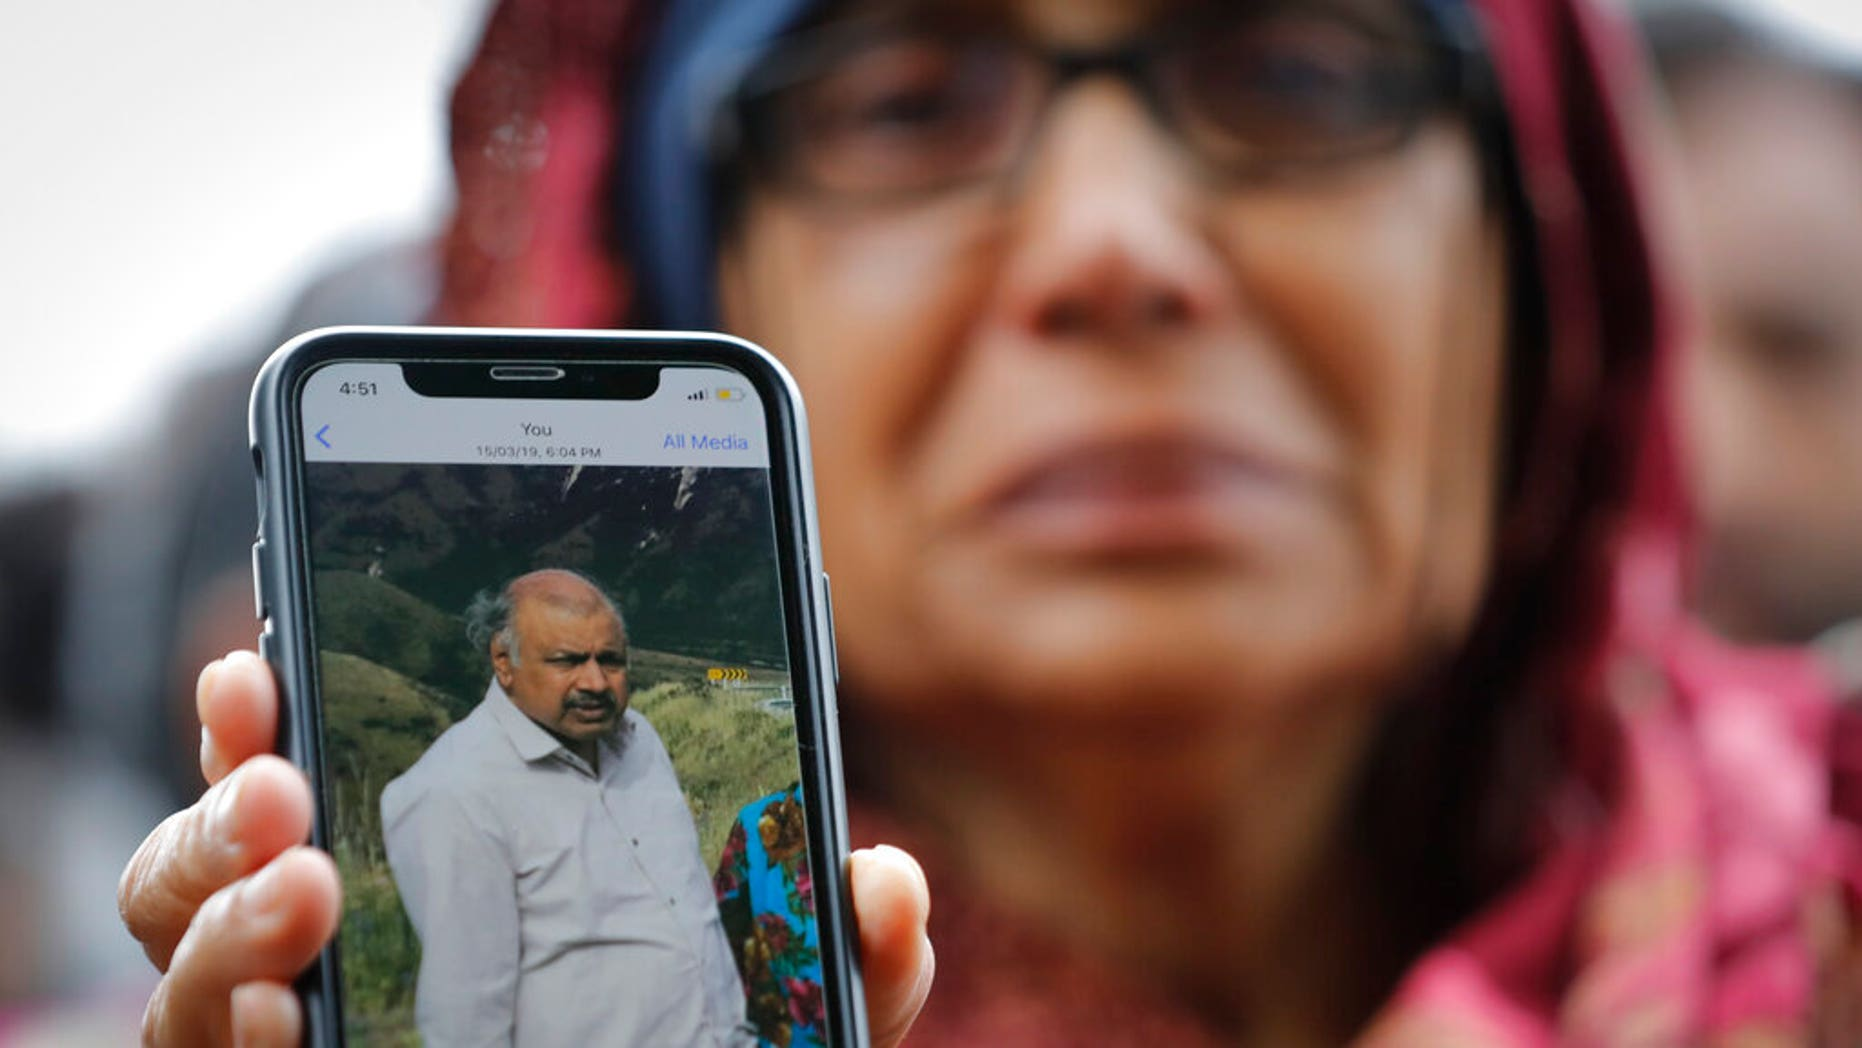 Akhtar Khokhur, 58 ans, montre une photo de son mari disparu, Mehaboobbhai Khokhar, lors dXCHARXune interview devant un centre dXCHARXinformation pour les familles ce week-end à Christchurch, en Nouvelle-Zélande. (AP Photo / Vincent Thian)